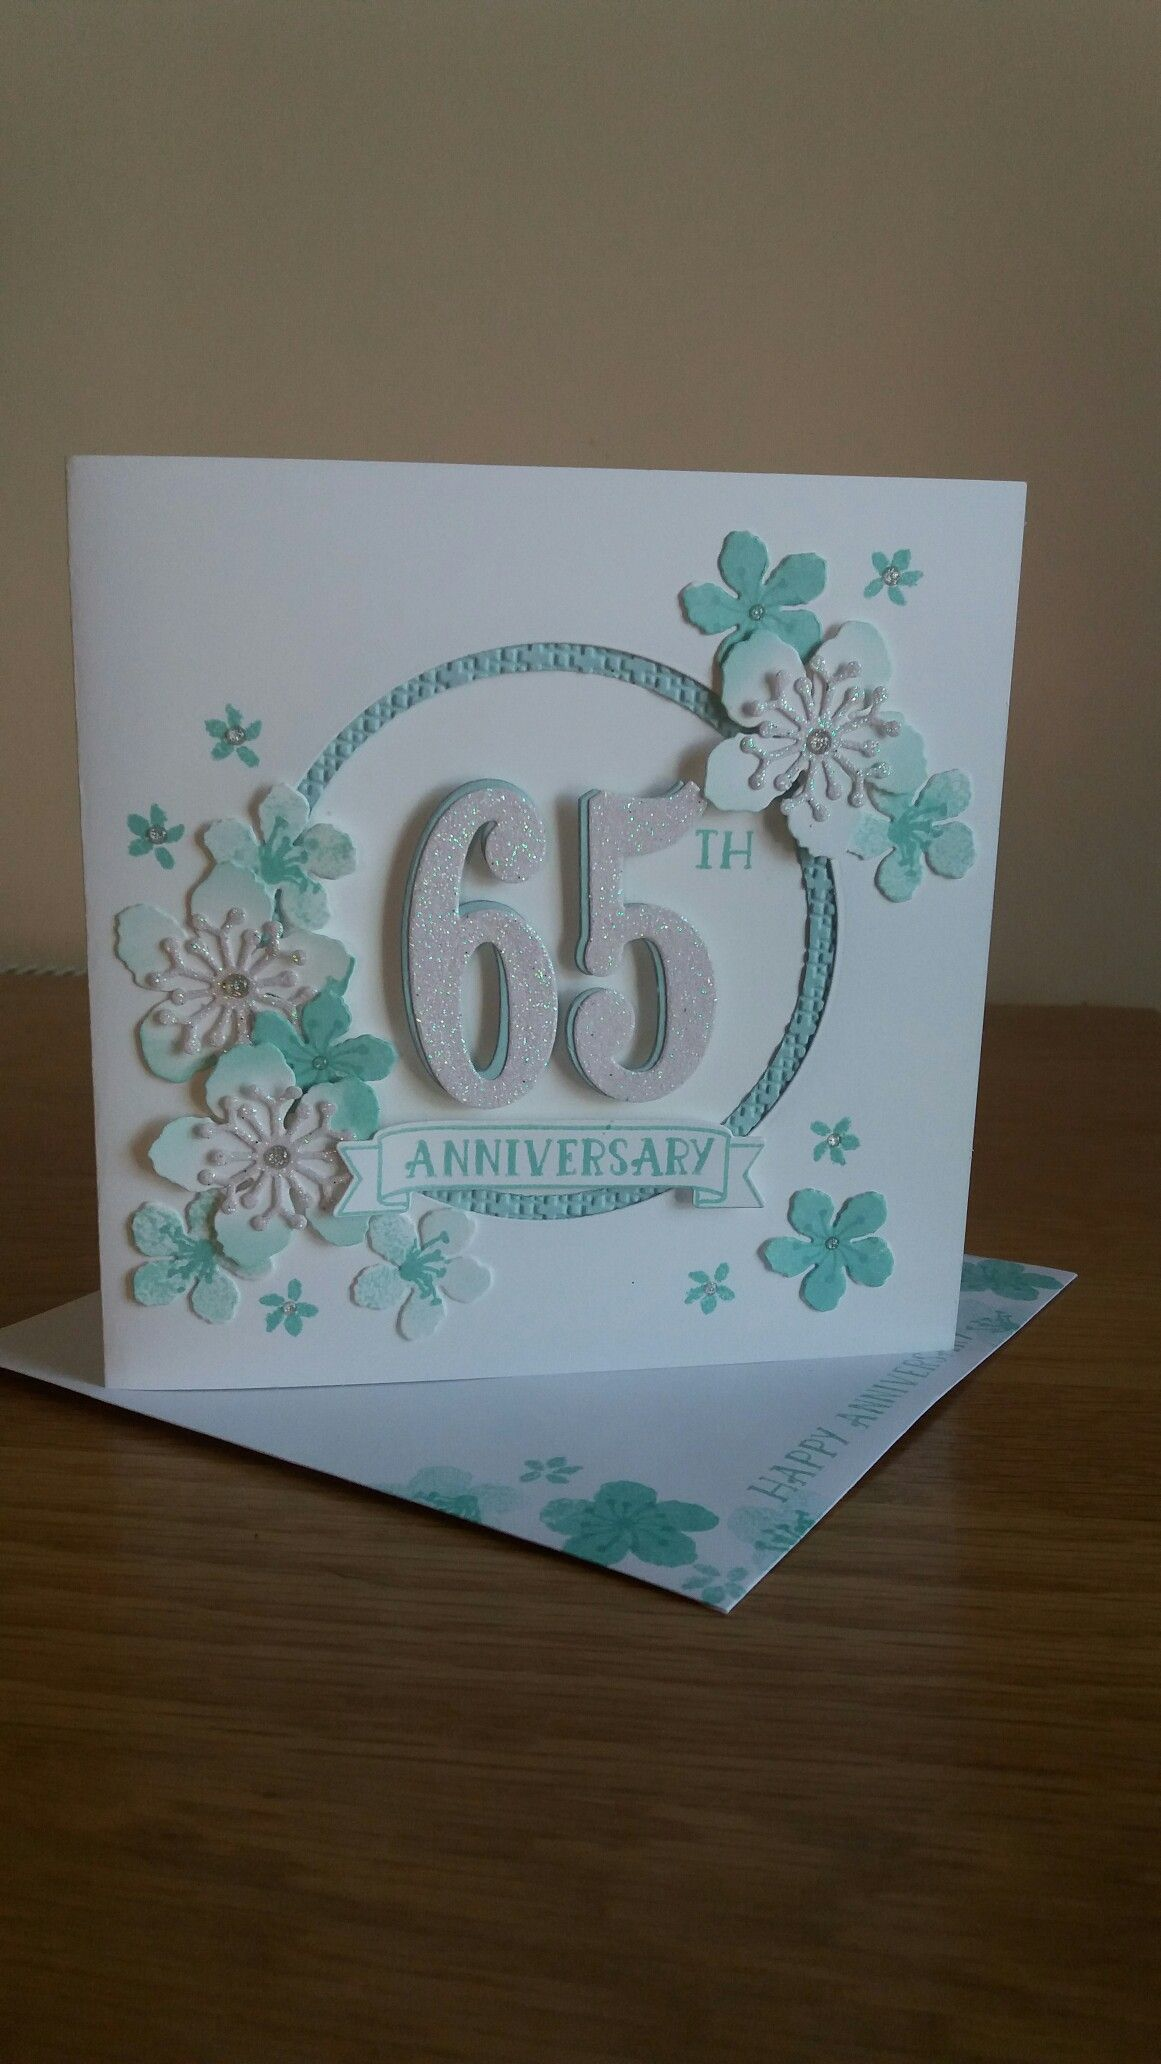 Anniversary card made using Botanicals and Number of Years